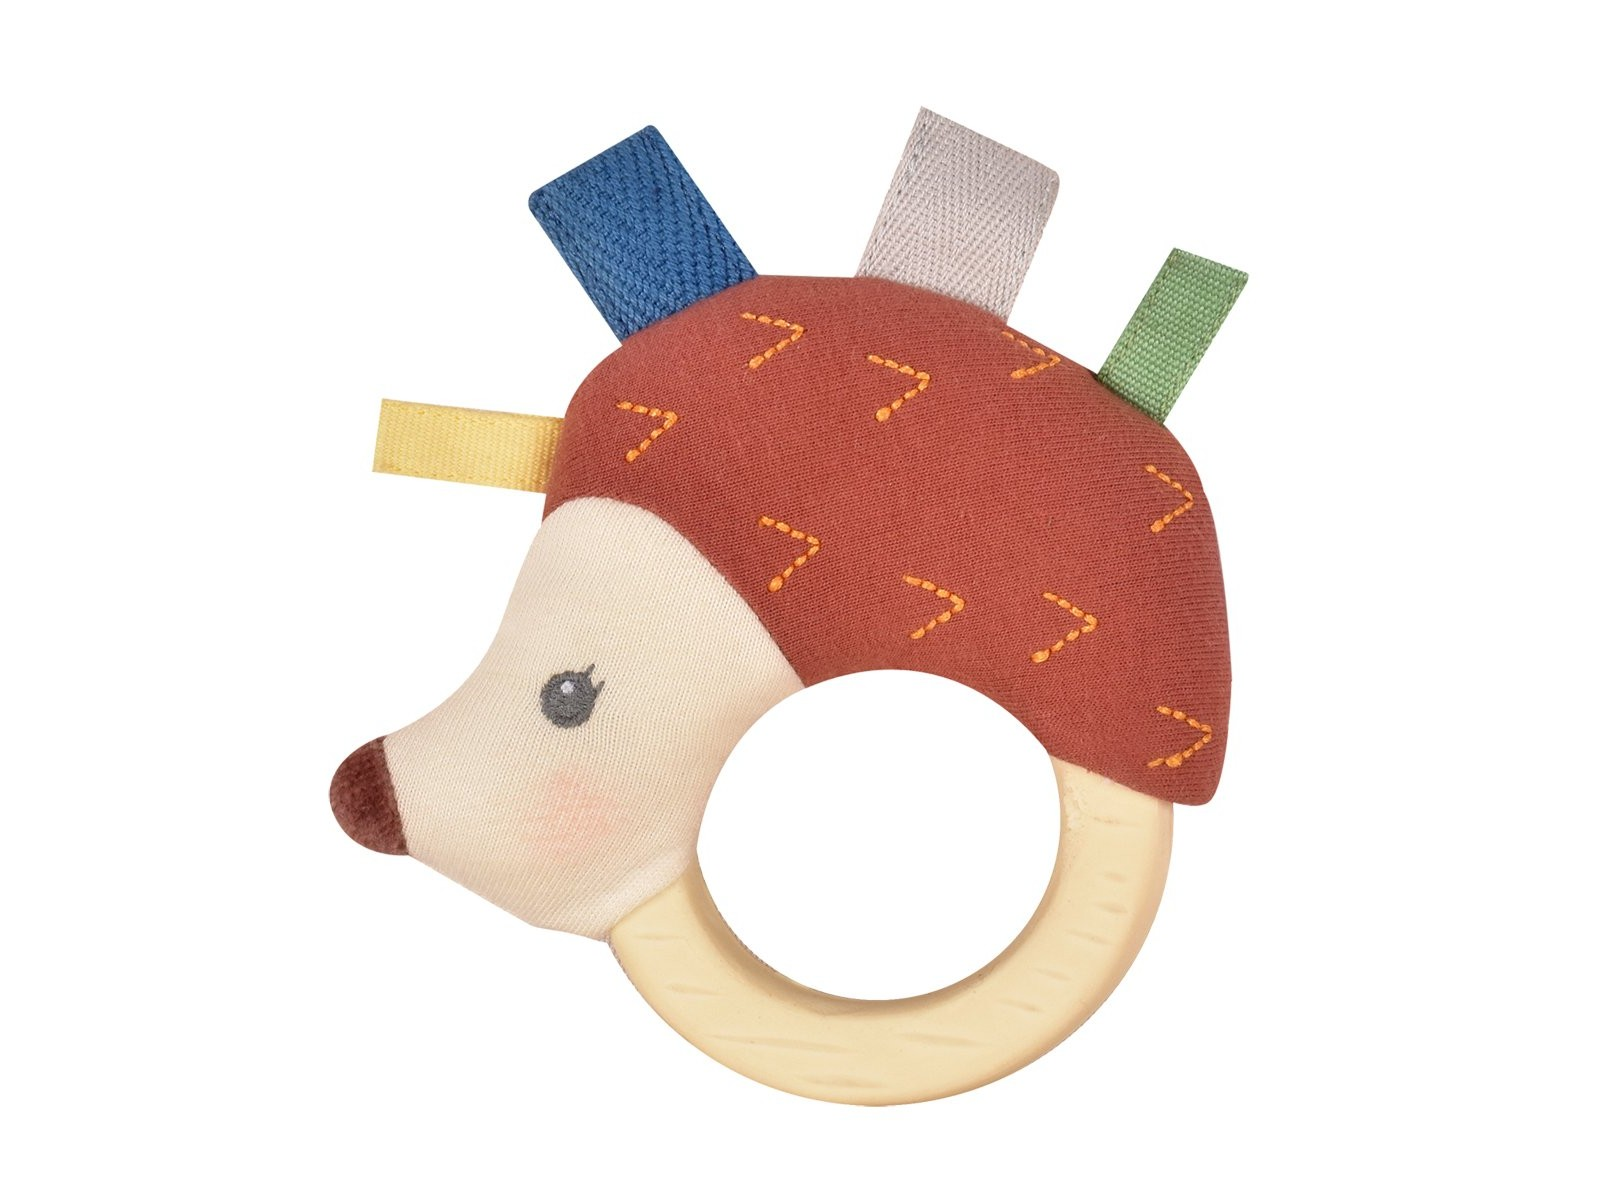 Ethan the Hedgehog Plush Rattle Toy With Rubber Teether